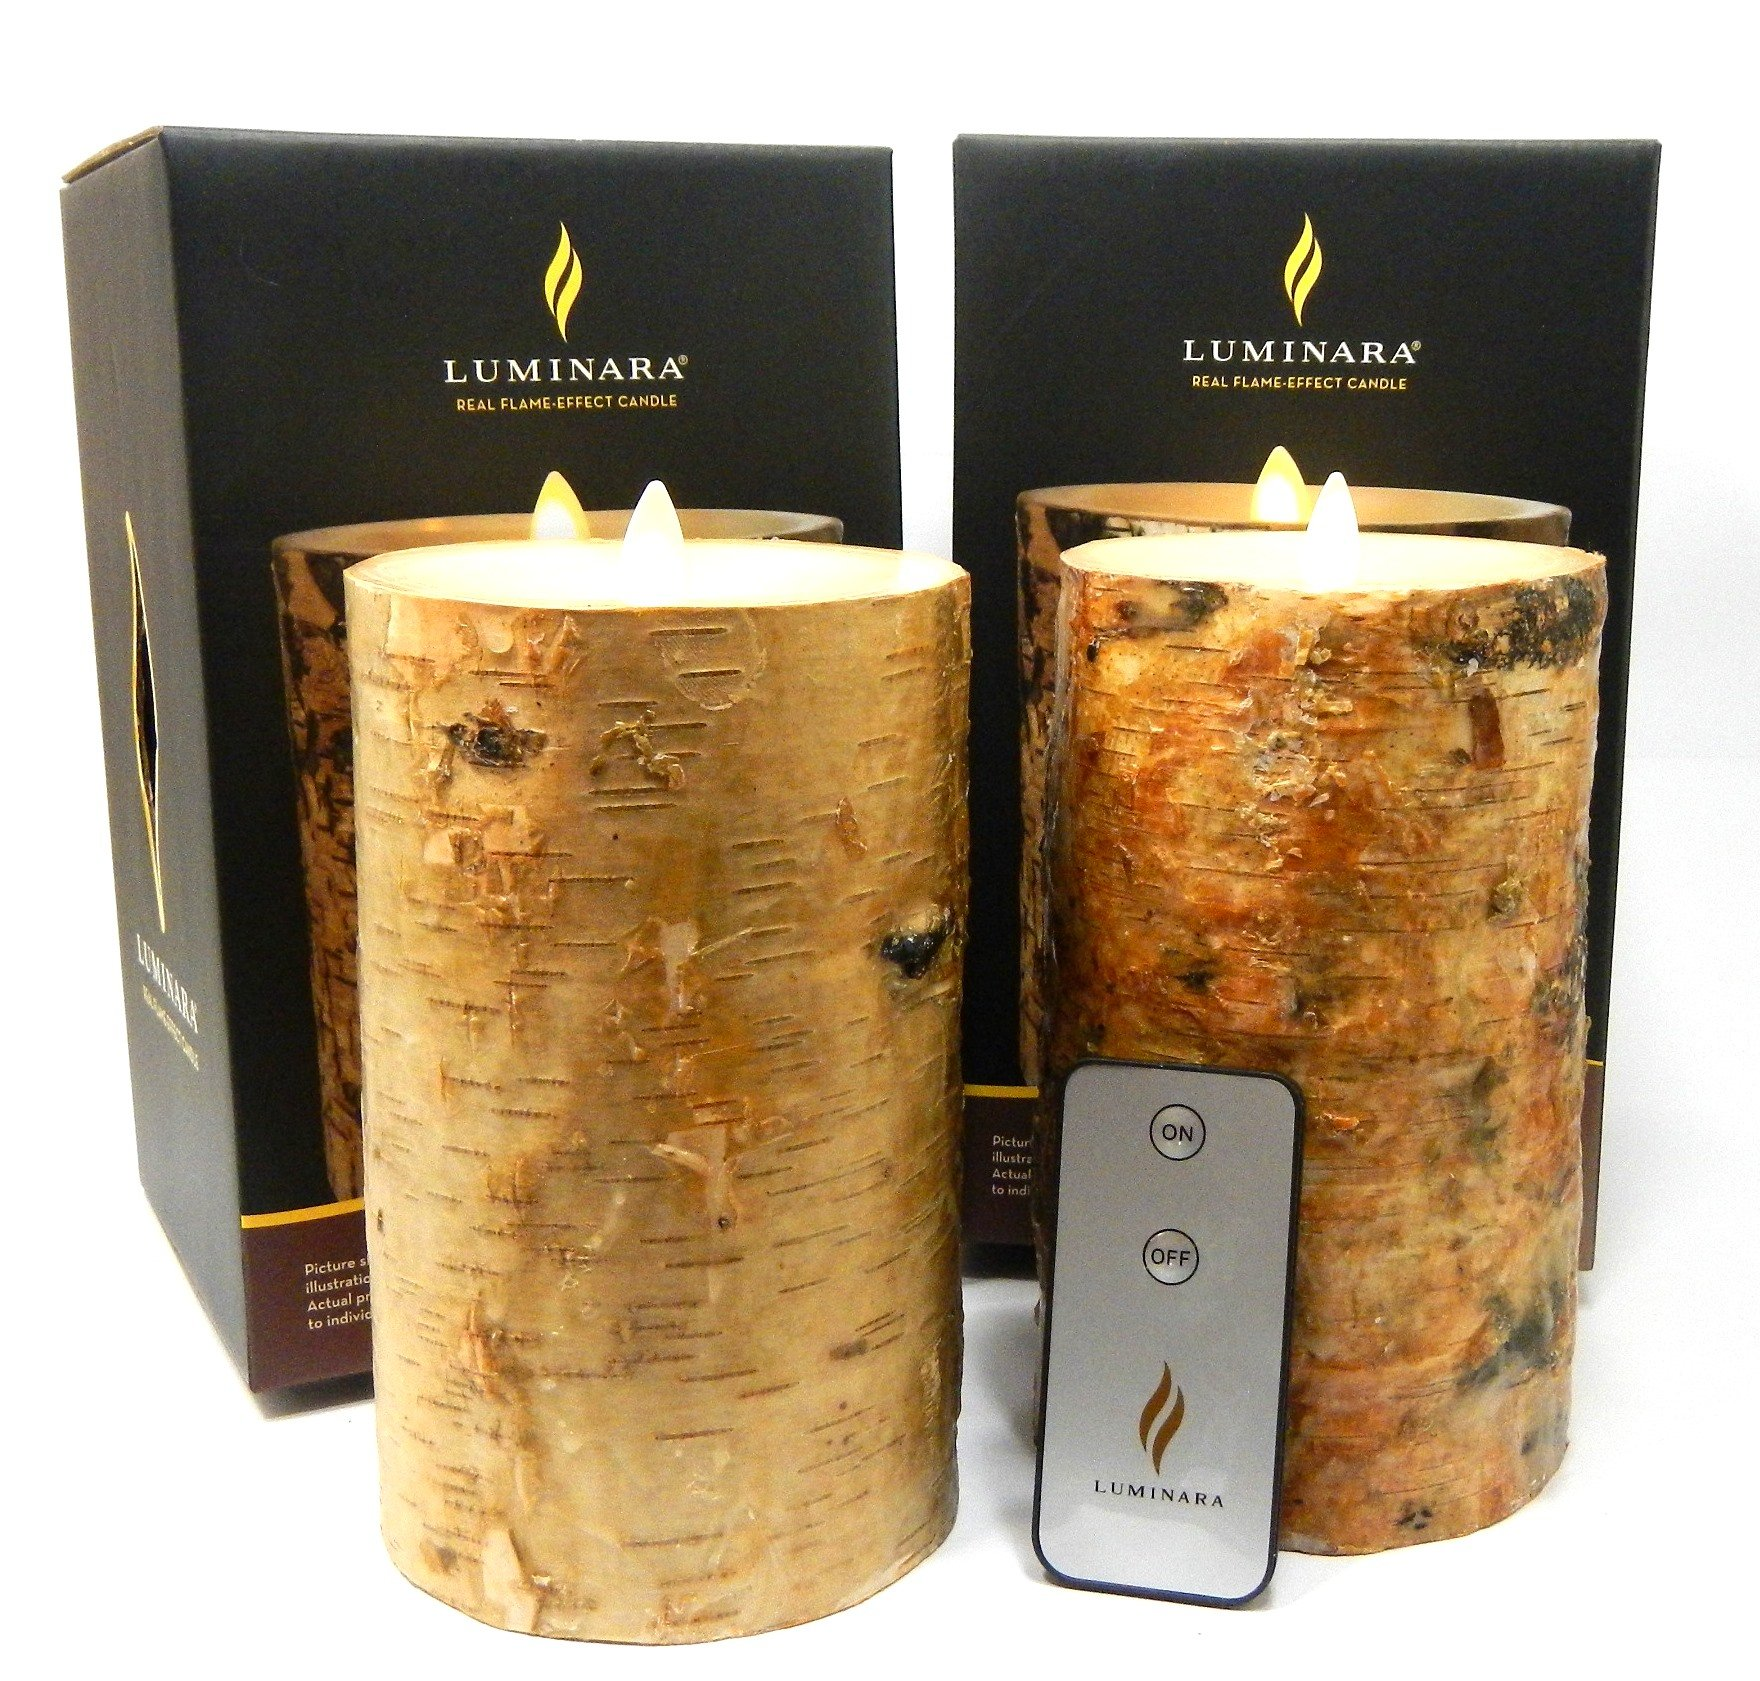 2pc Luminara BIRCH BARK Flameless Candle 7'' In. Tall Wax Pillar Set w/ REAL BIRCH WOOD 4'' In. Diameter | Bonus Remote Control Included by Luminara